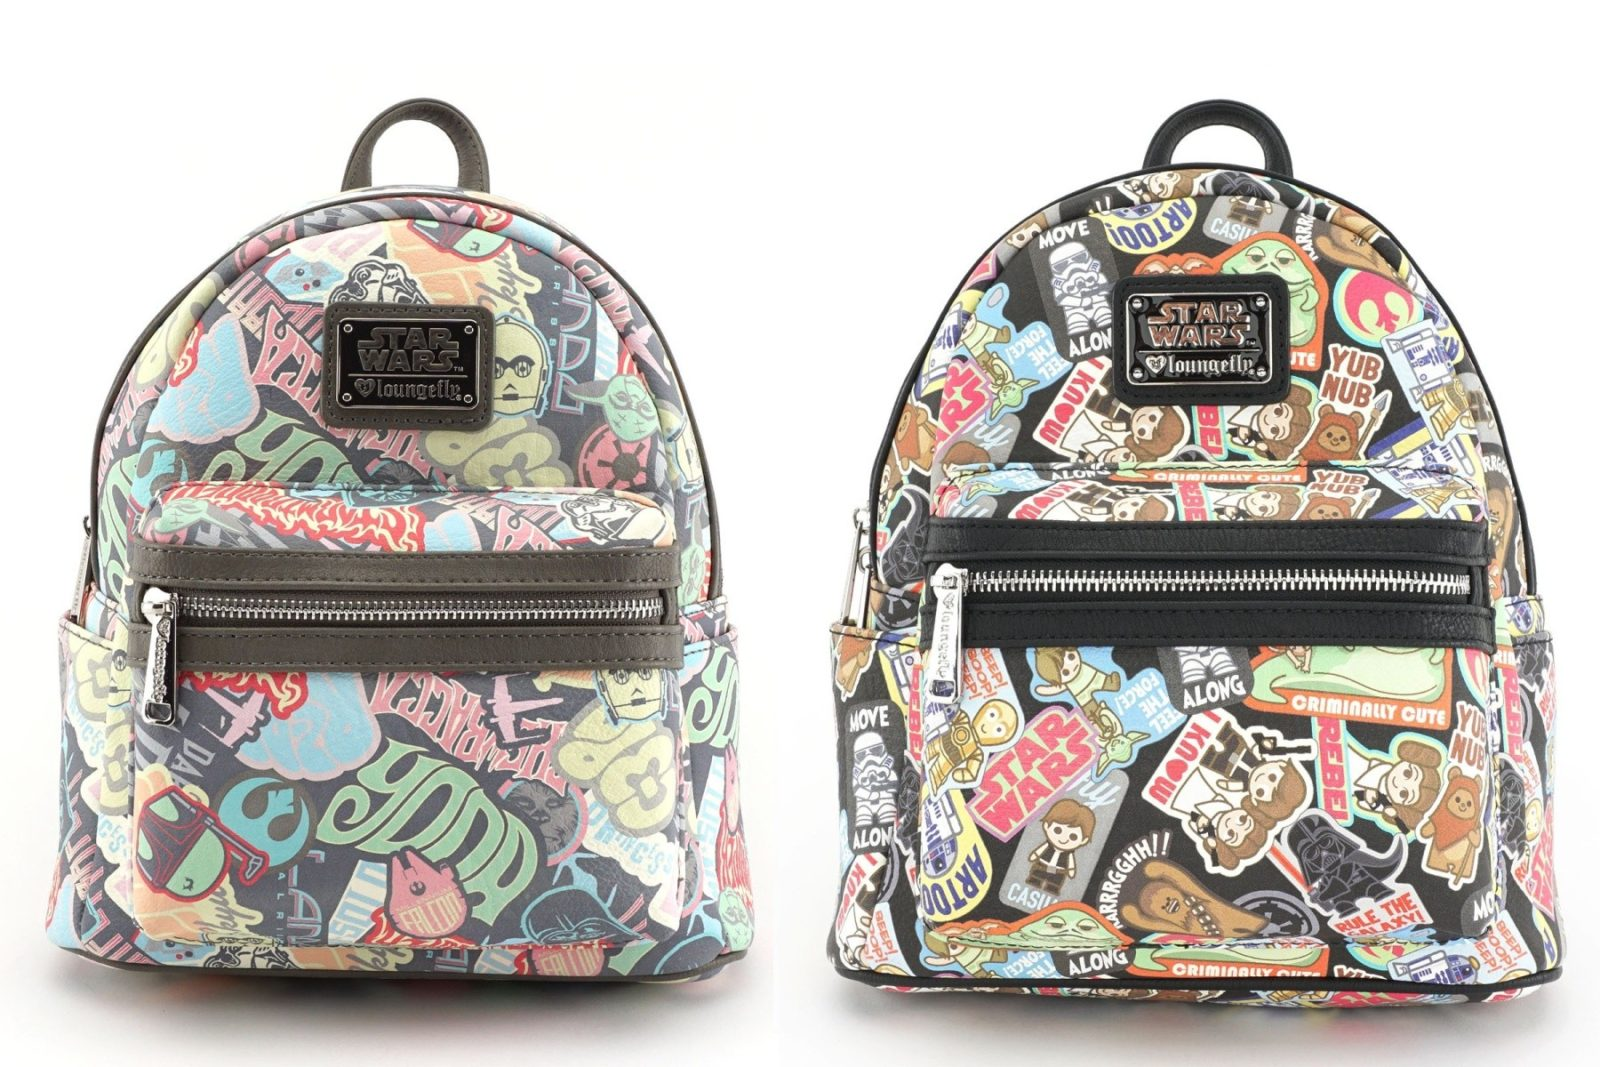 Loungefly x Star Wars Sticker Mini Faux Leather Backpacks